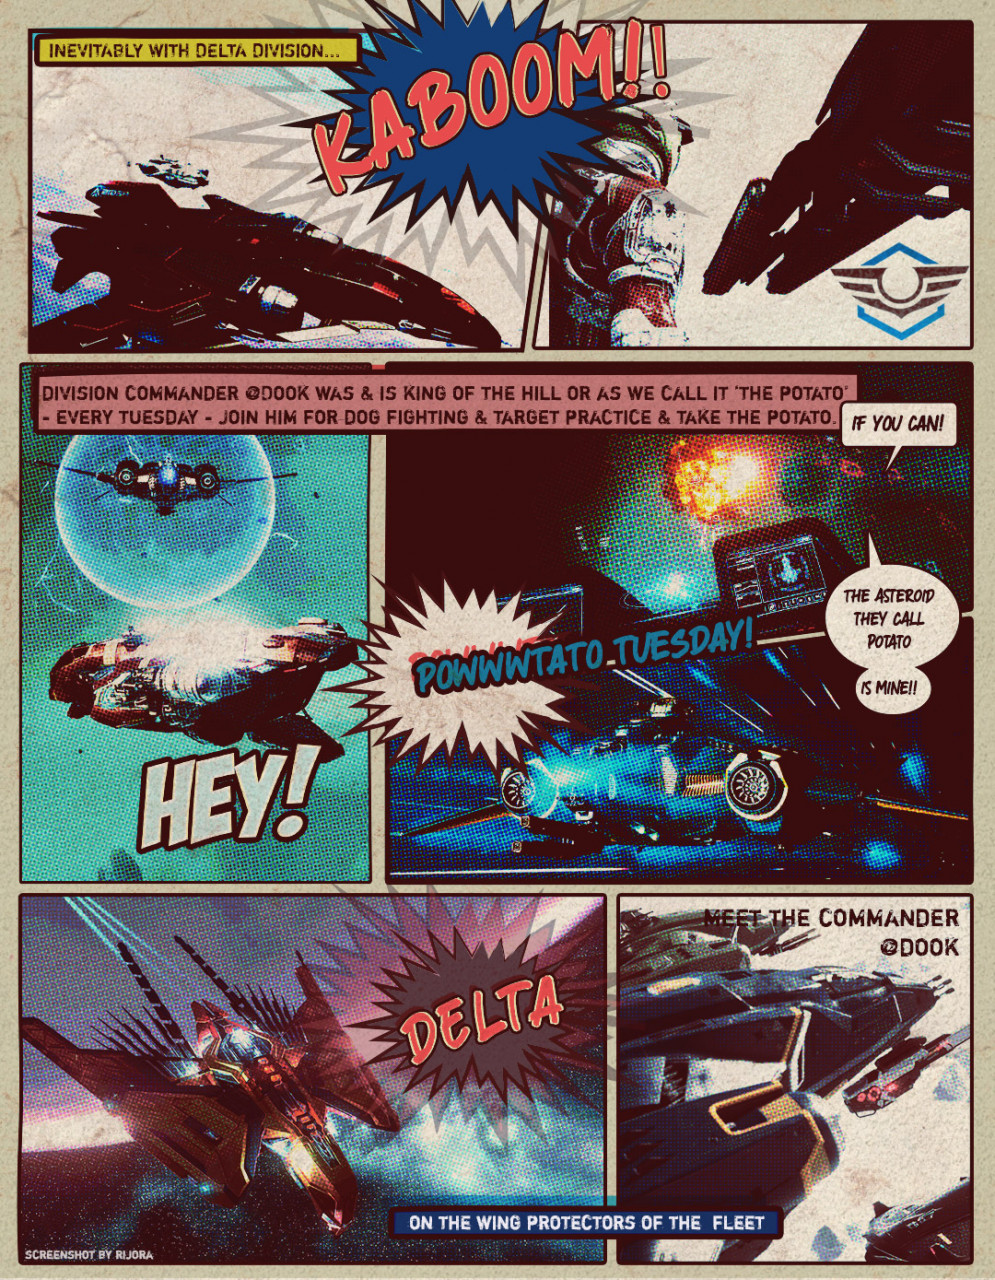 On The Ophelia Vine - Monthly News Strip from DSC - 1st Issue -Delta